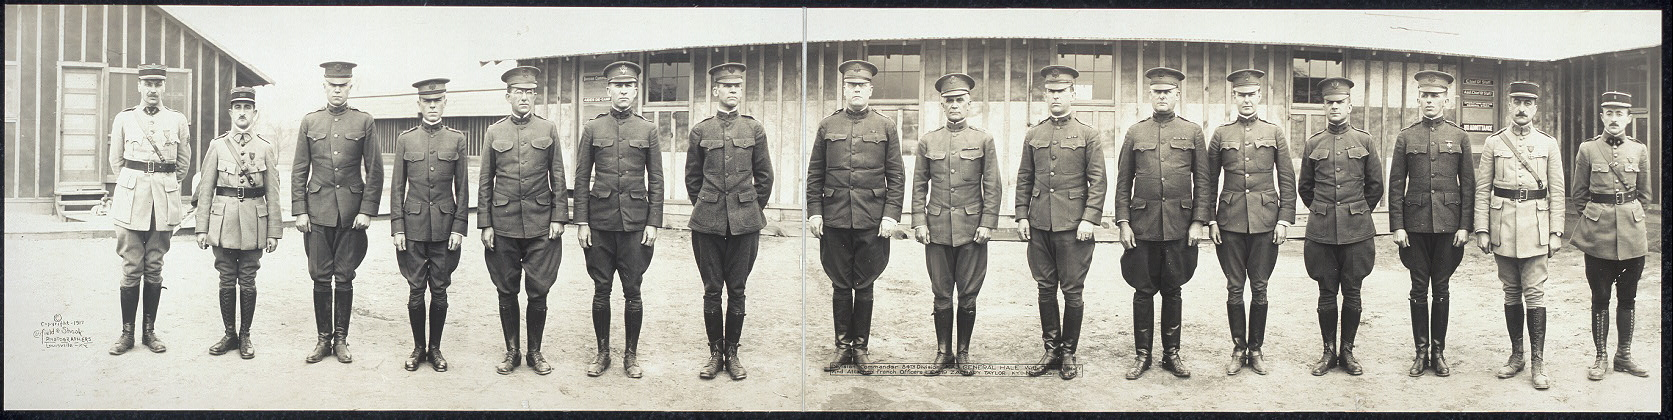 division-commander-84th-division-maj-general-hale-with-division-staff-and-attached-french-officers-camp-zachary-taylor-ky-november-21-1917-loc_3006359418_o.jpg